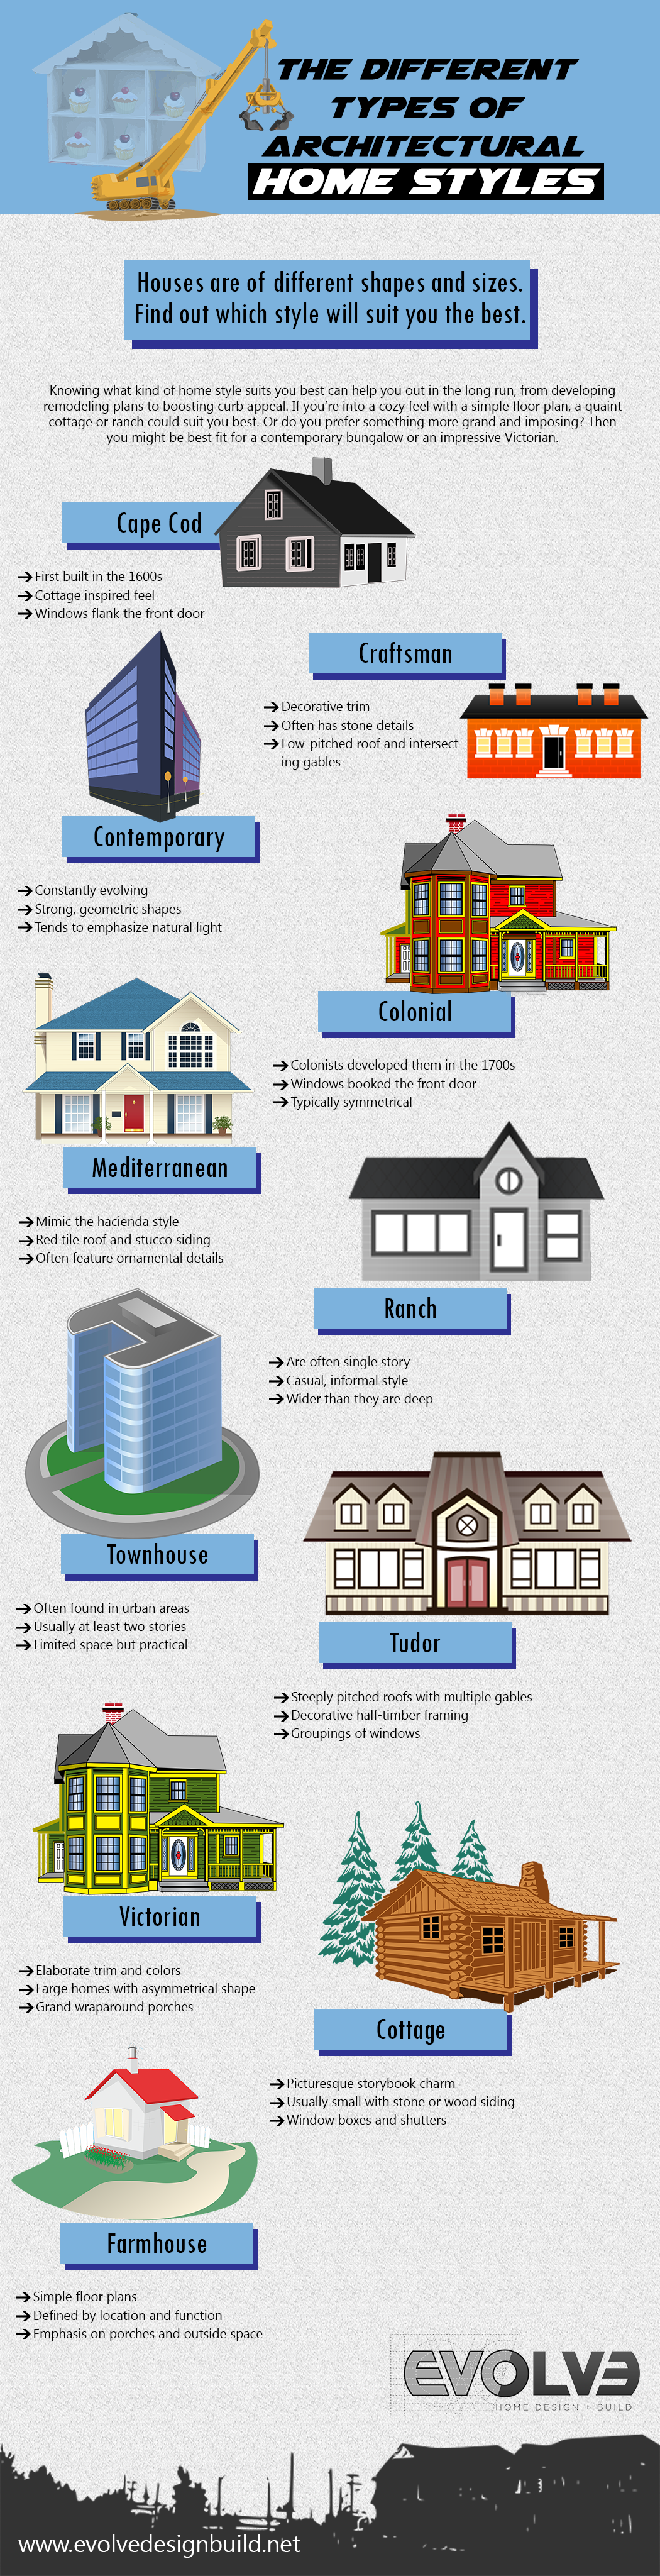 architectural home styles infographic